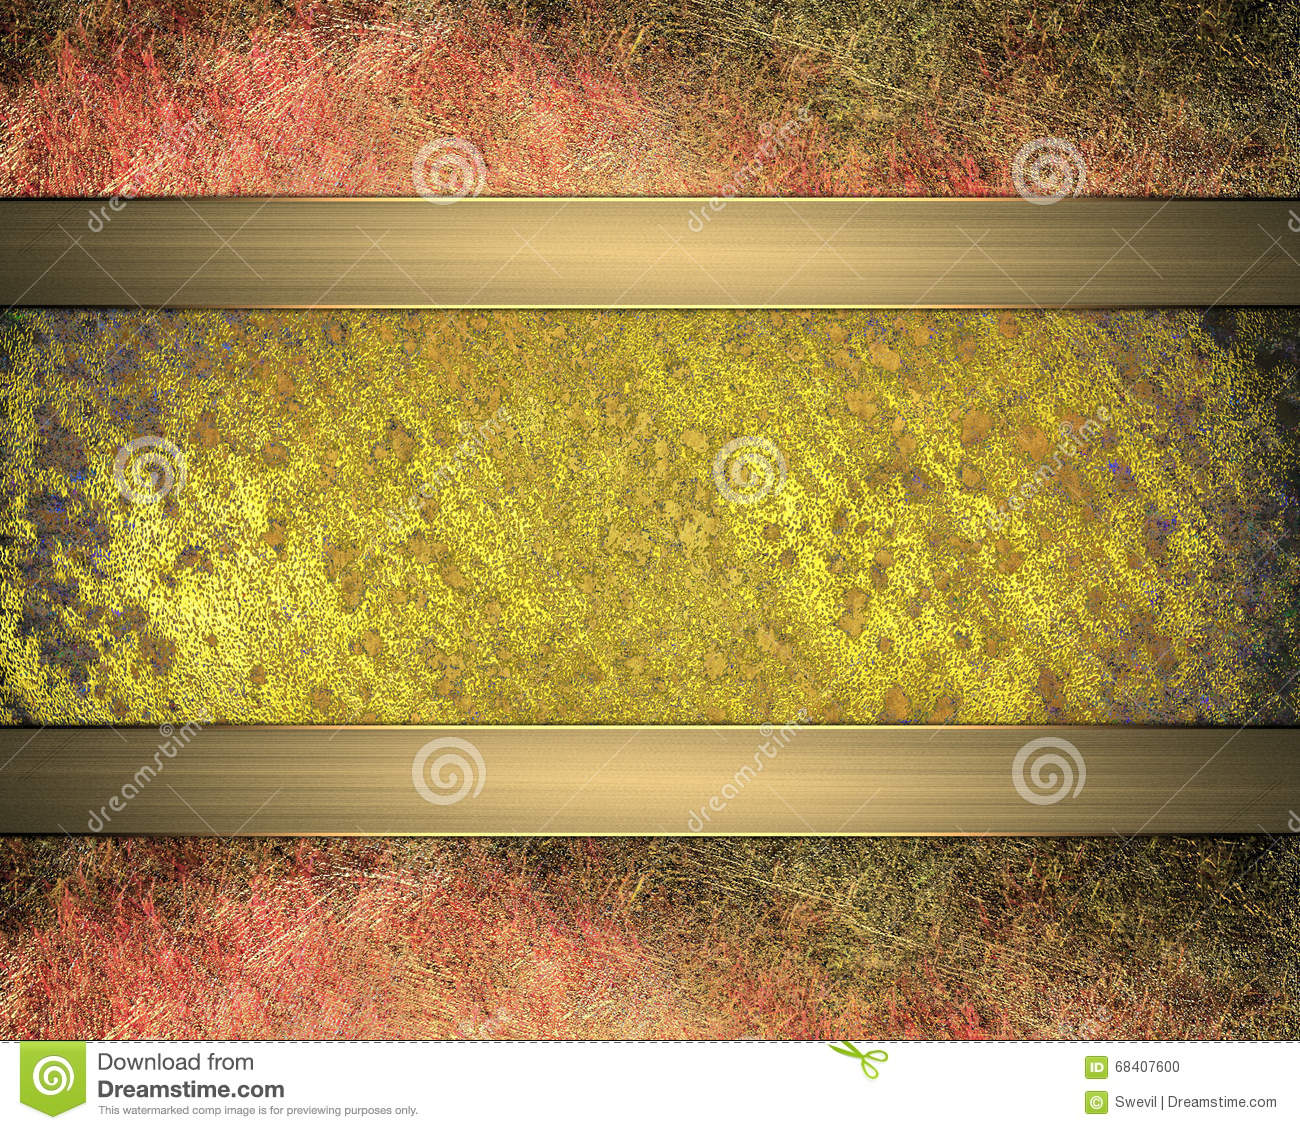 grunge golden plaque with reddish edges element for design